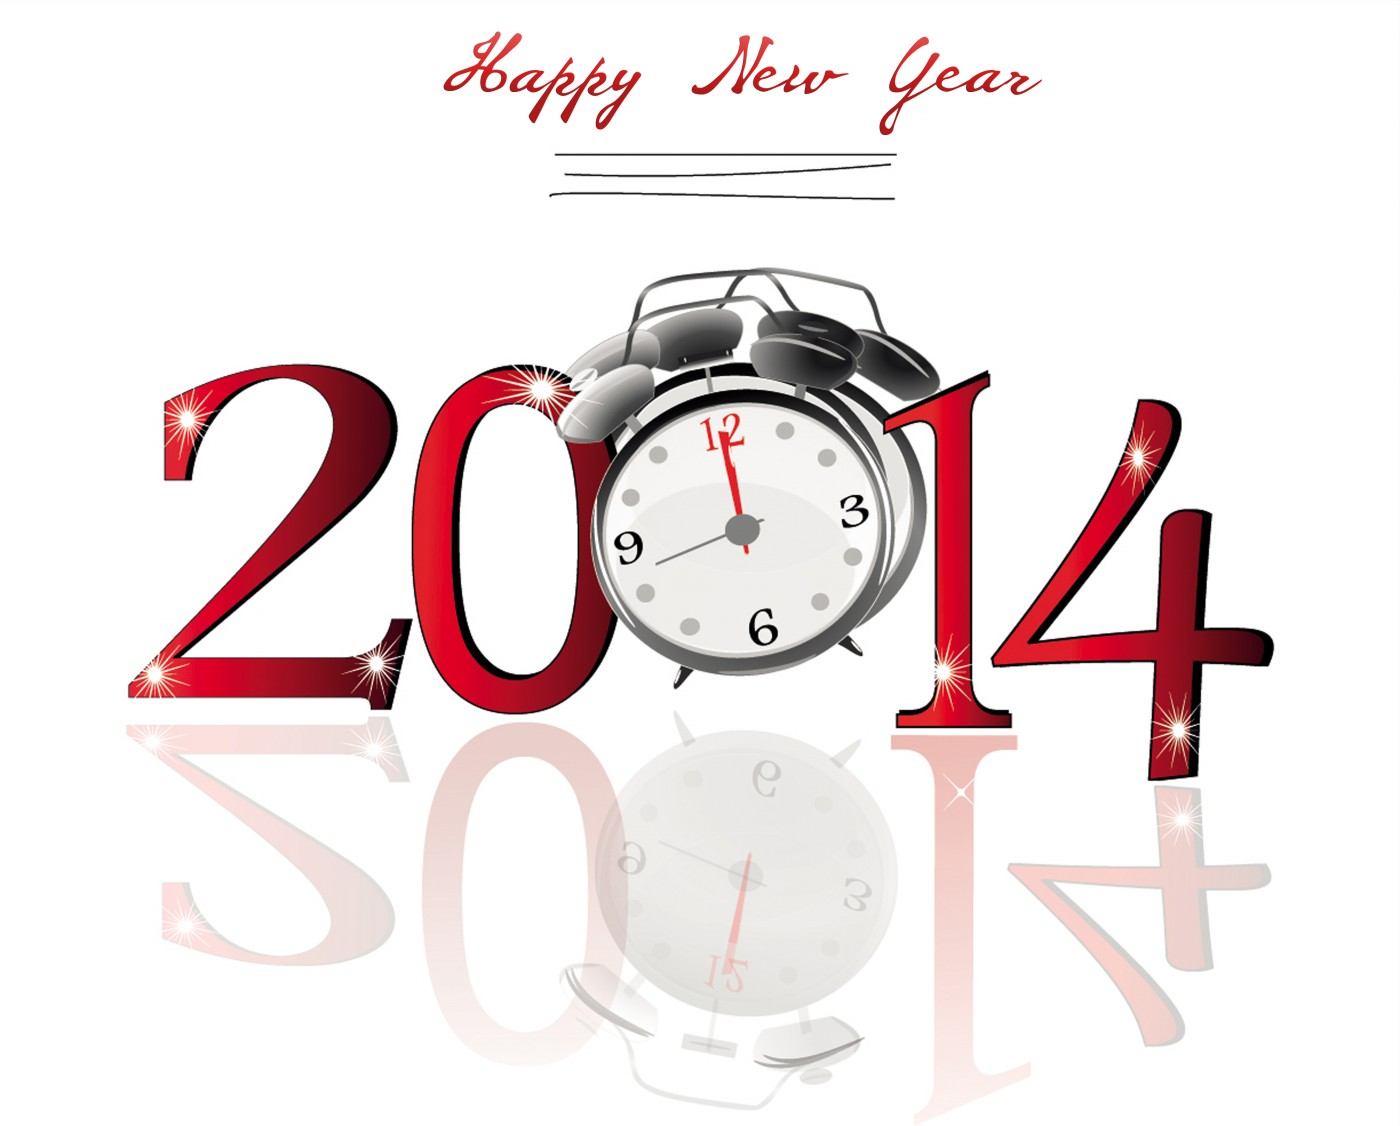 Happy New Year! – Duncan Financial Group